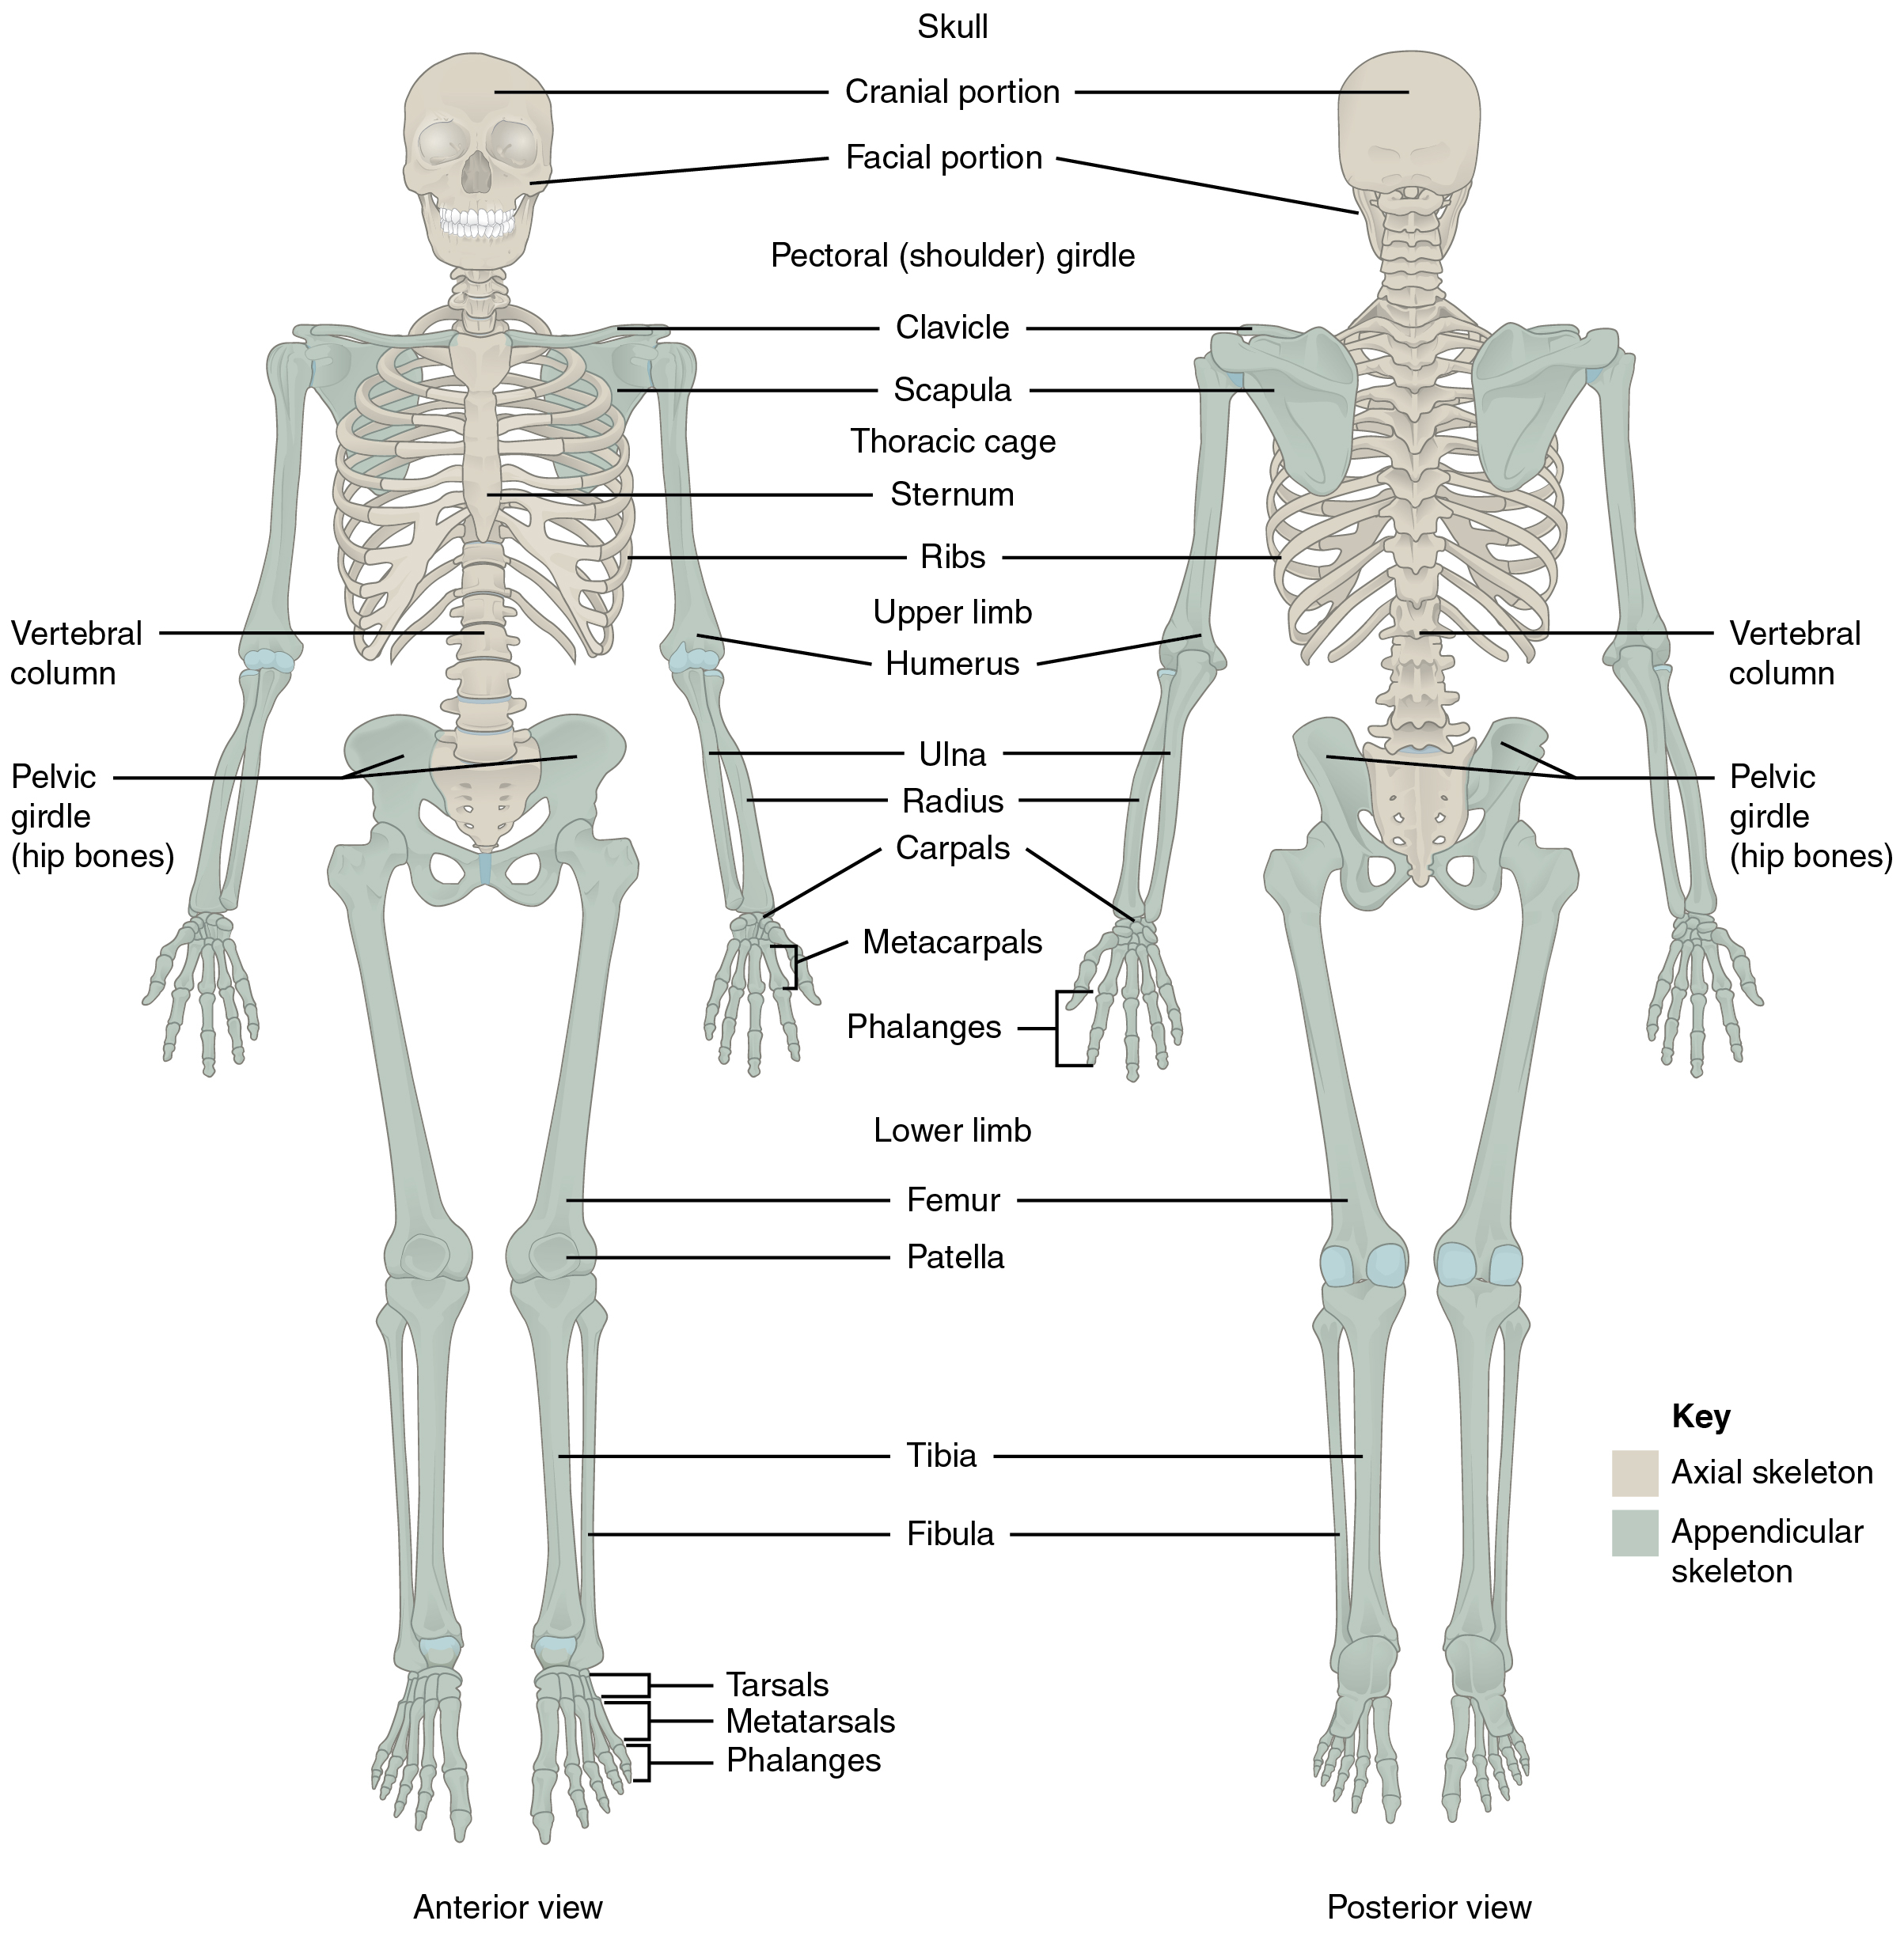 Skeletal System Diagram 71 Divisions Of The Skeletal System Anatomy And Physiology